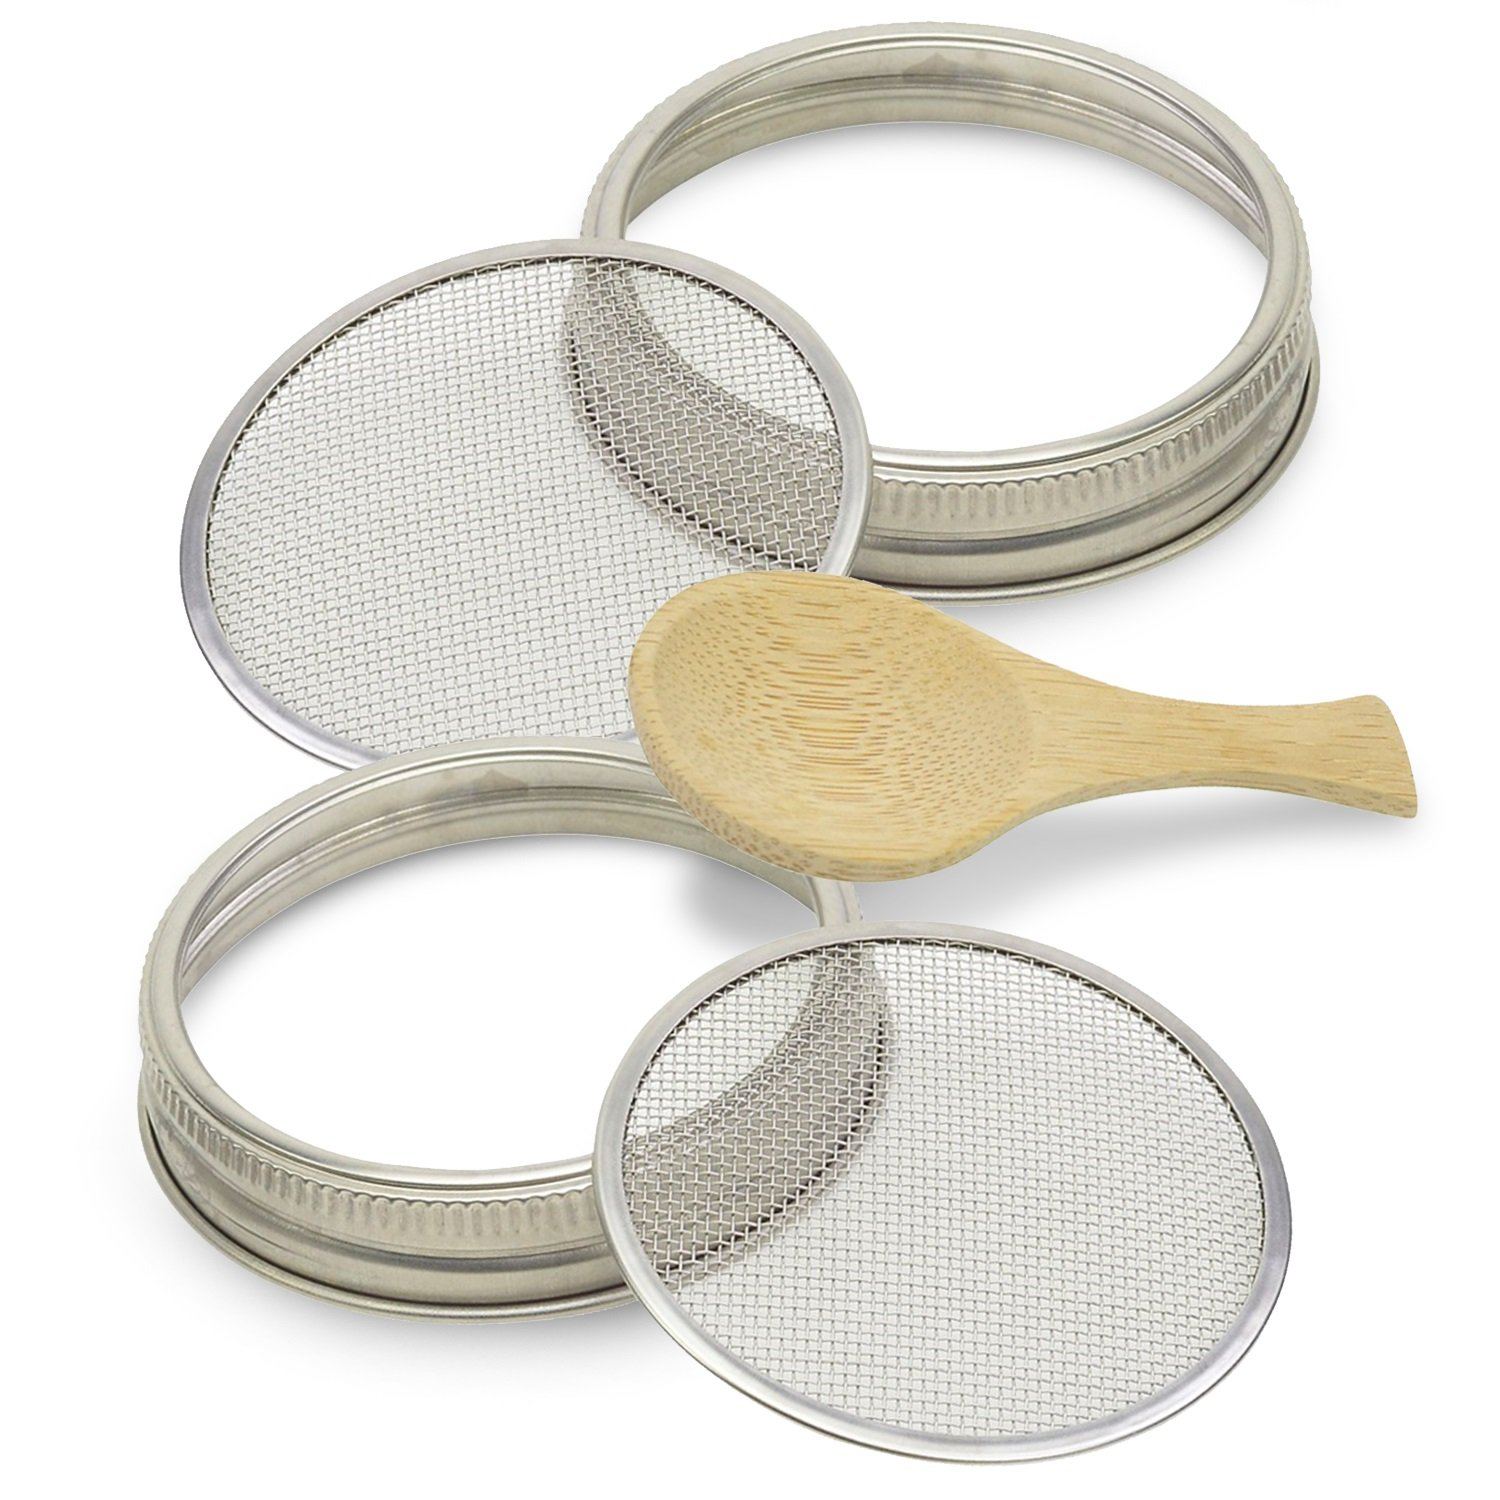 Elan Products Sprouting Lids Plus a Bonus Organic Bamboo Spoon. Pure Stainless Steel Seed Sprouter Screens and Rings Turn Your Wide Mouth Mason Canning Jar Into a DIY Sprouting Kit (2 sets).